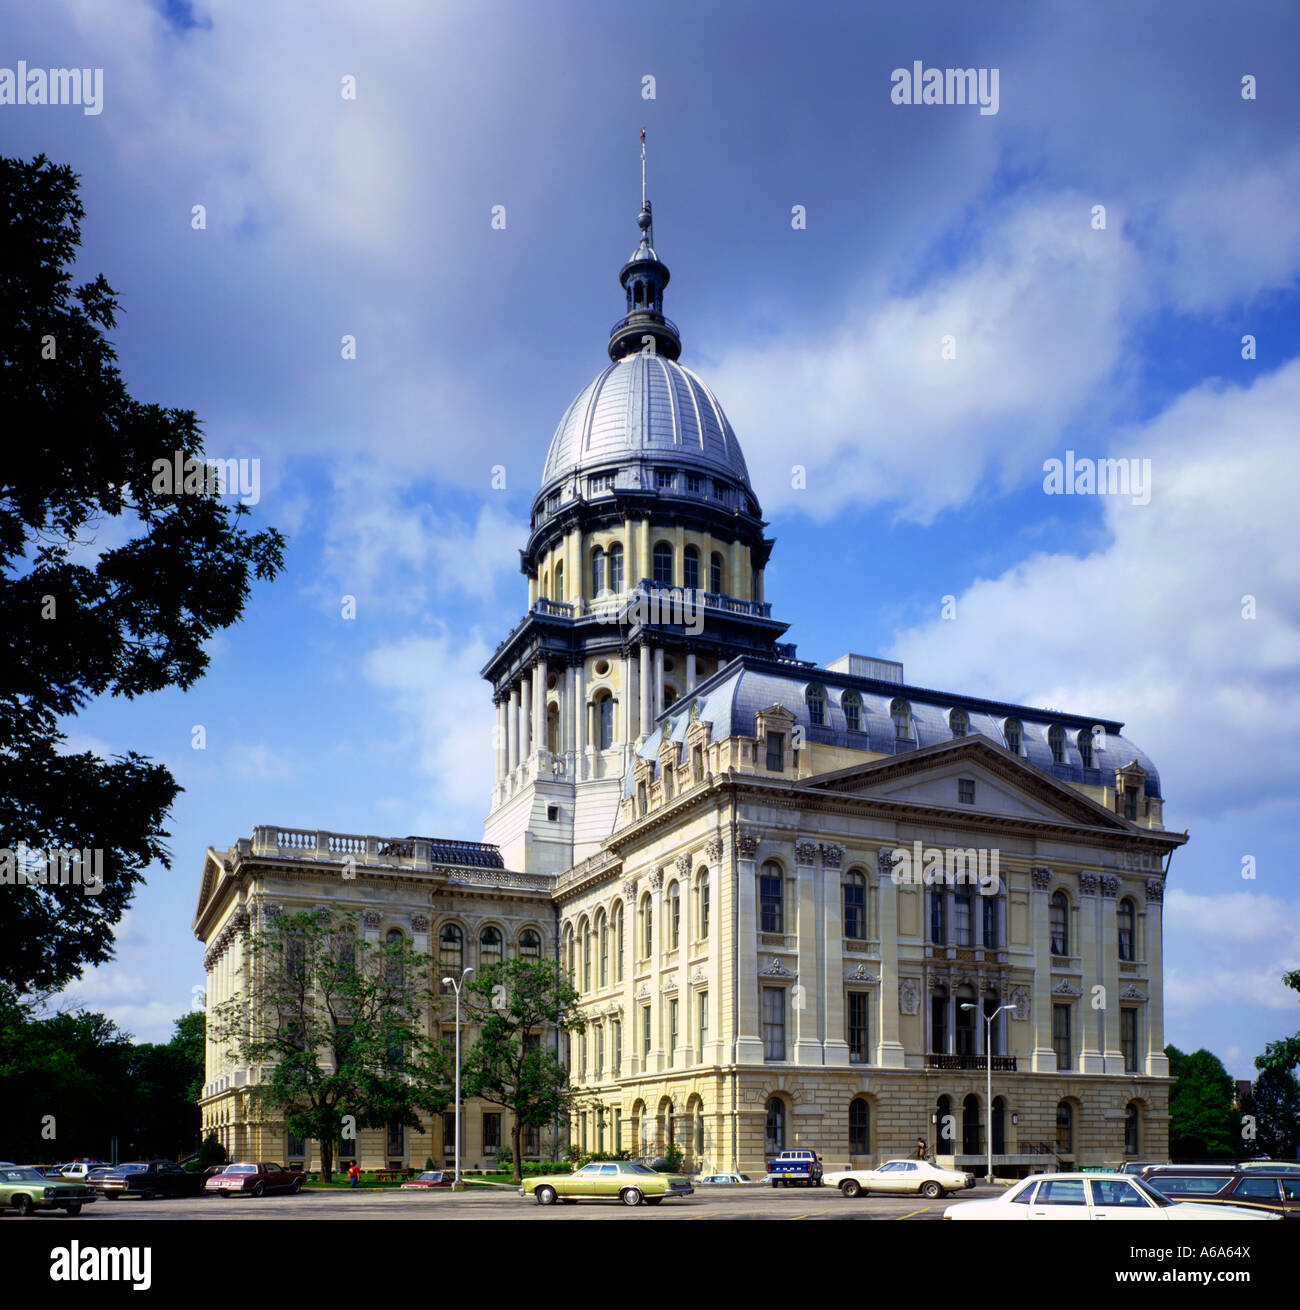 Illinois State capitol building in Salem in Illinois - Stock Image